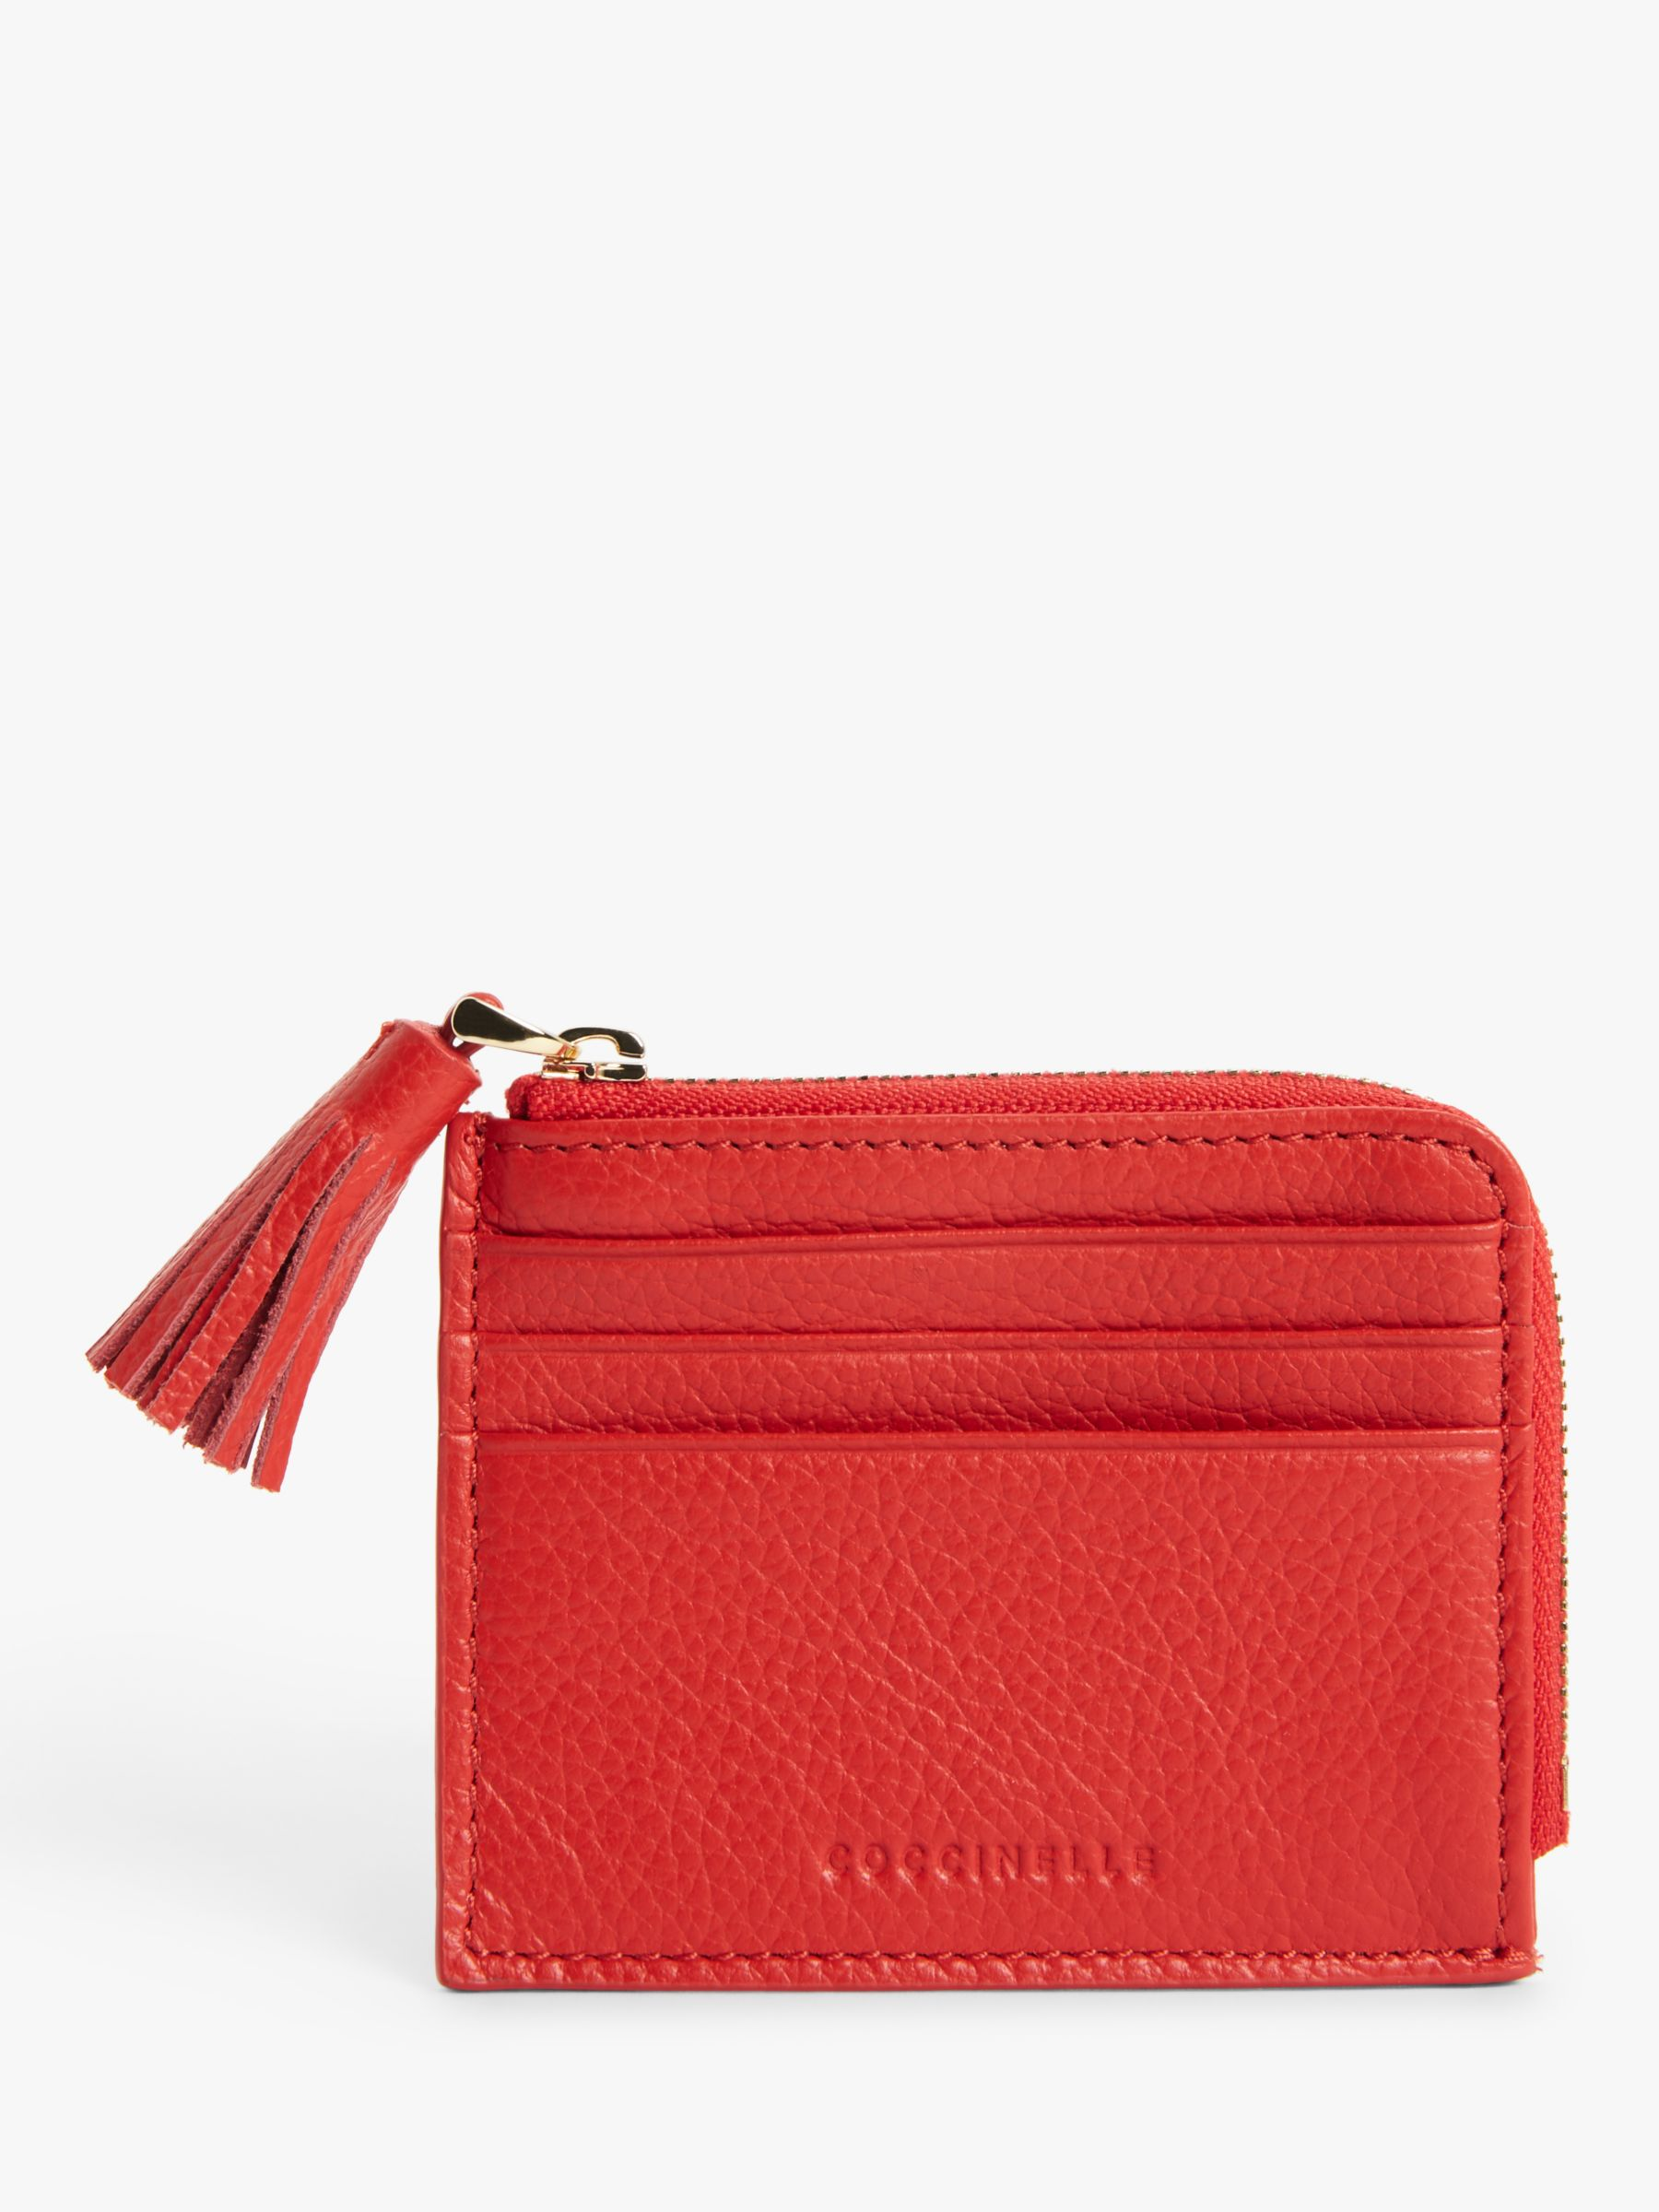 Coccinelle Coccinelle Tassel Leather Card Holder